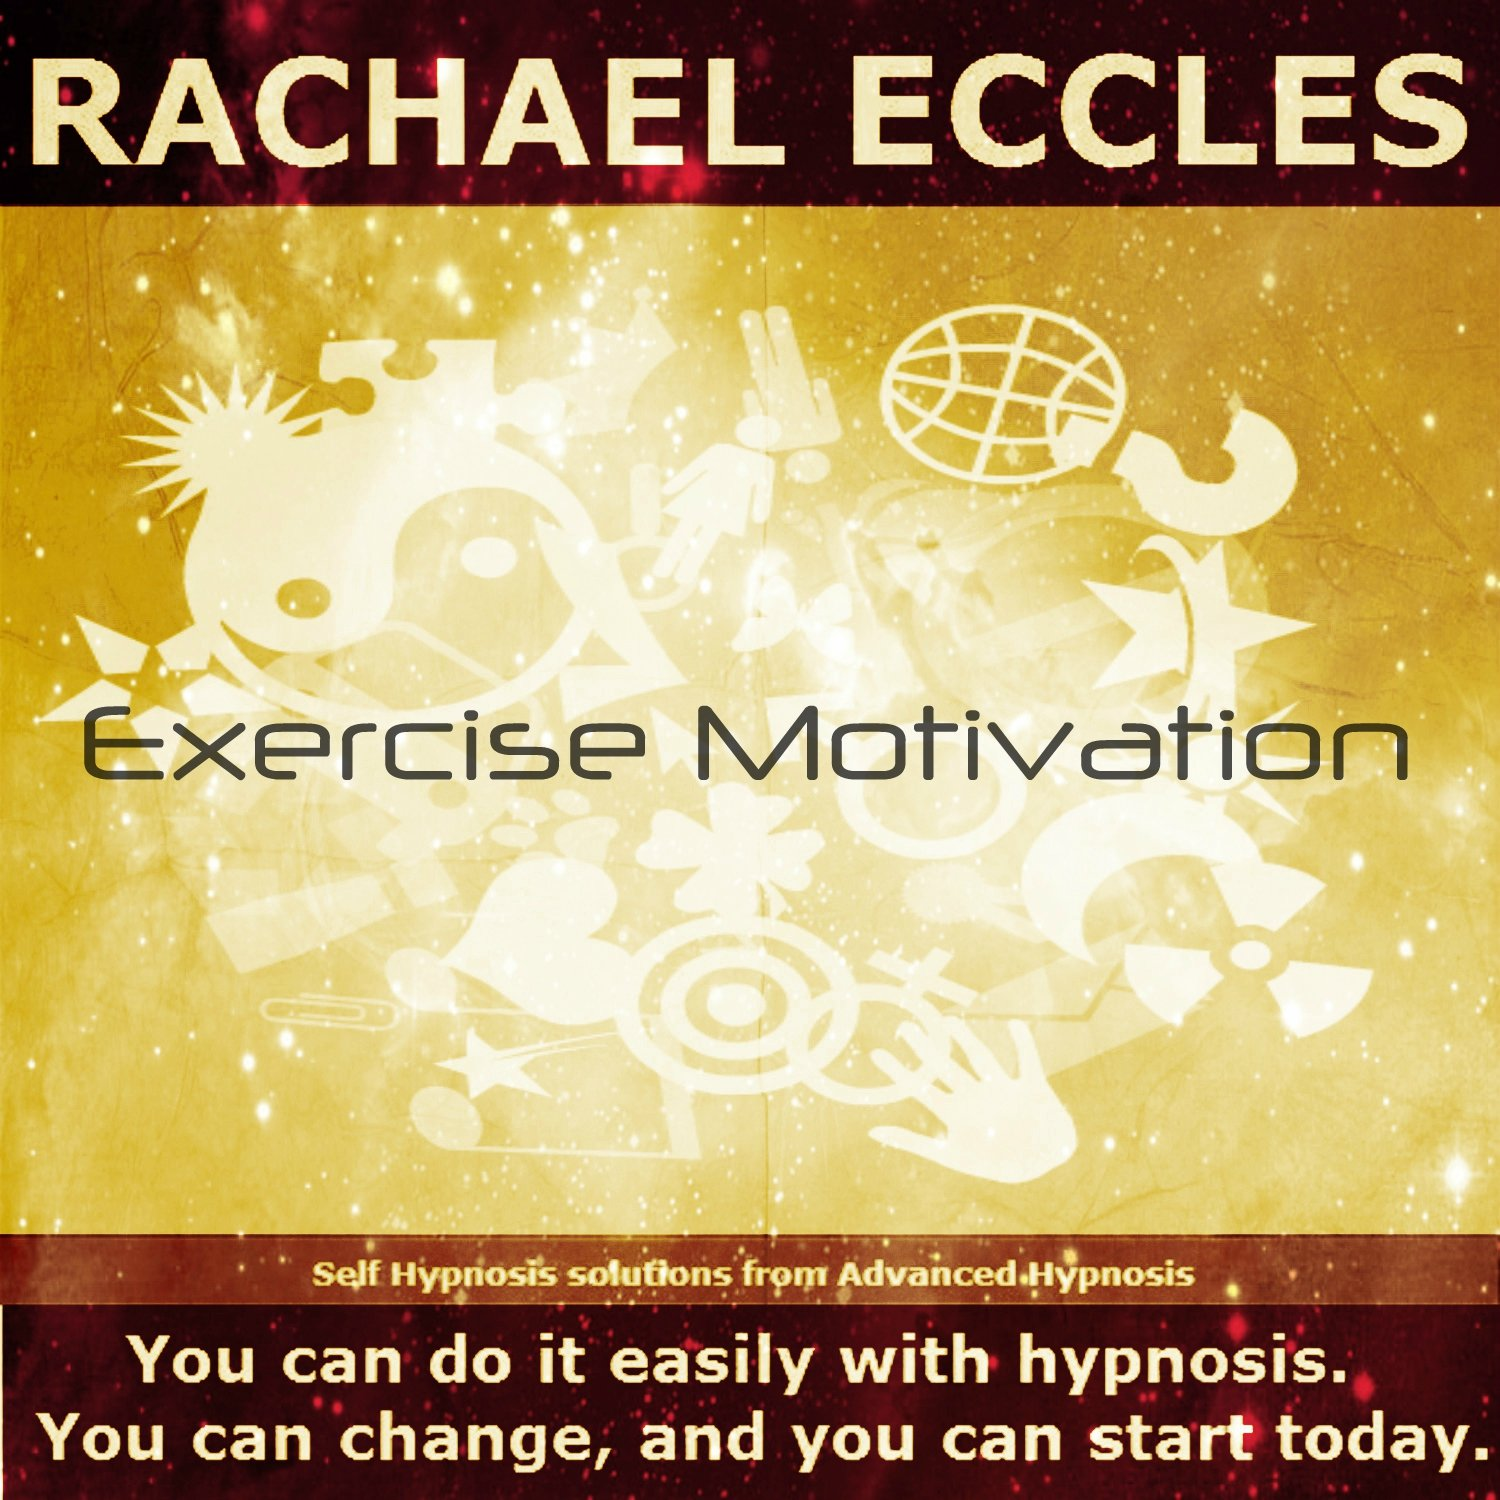 Exercise Motivation Hypnosis for Weight Loss and Fitness, Motivational Self Hypnosis, Hypnotherapy CD by Advanced Hypnosis